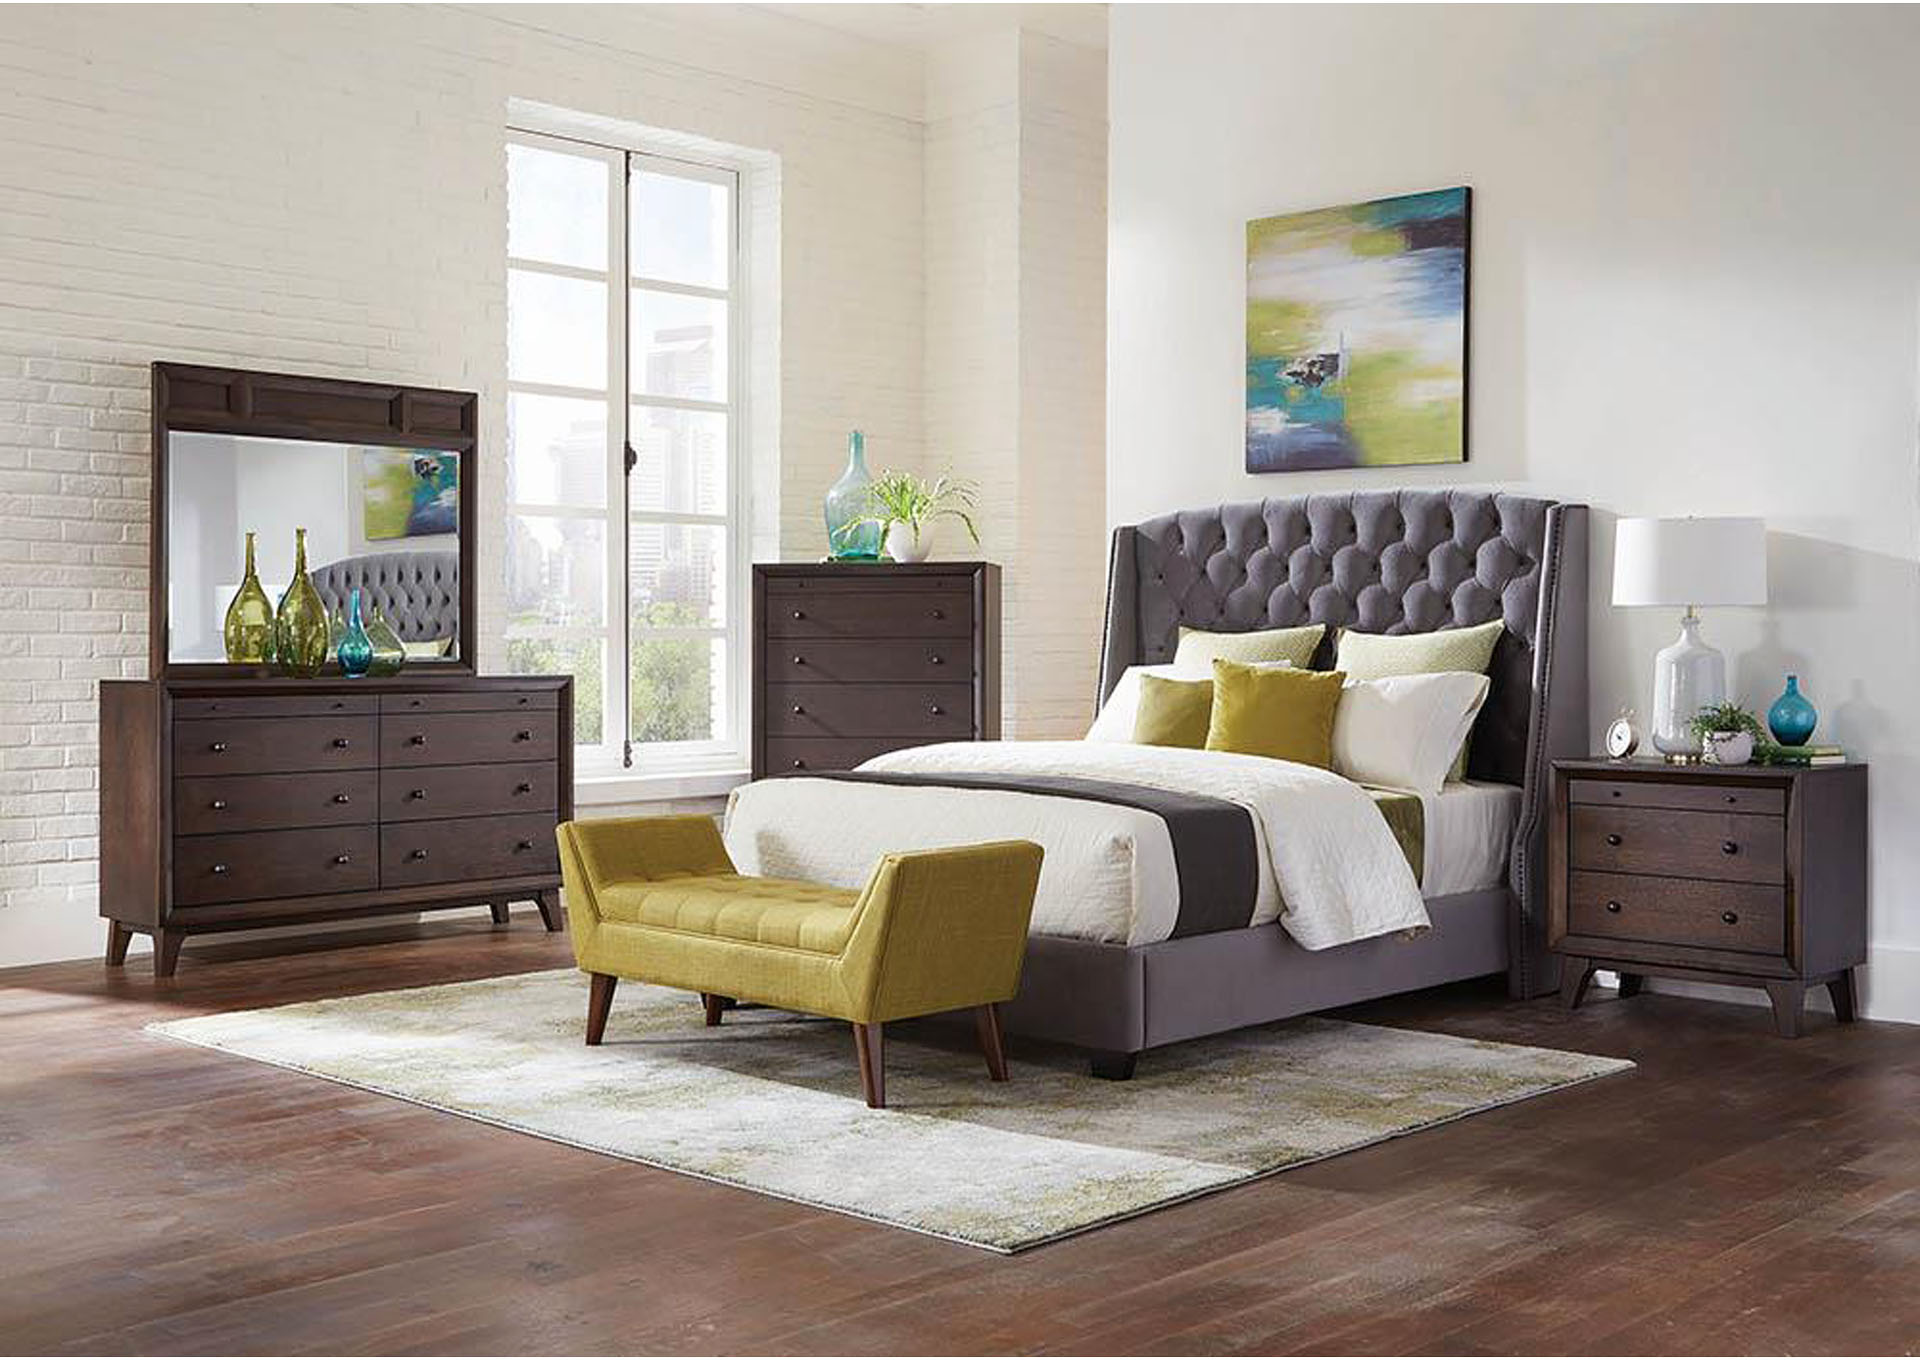 Alto Pissarro Transitional Upholstered Grey and Chocolate Queen Bed,Coaster Furniture